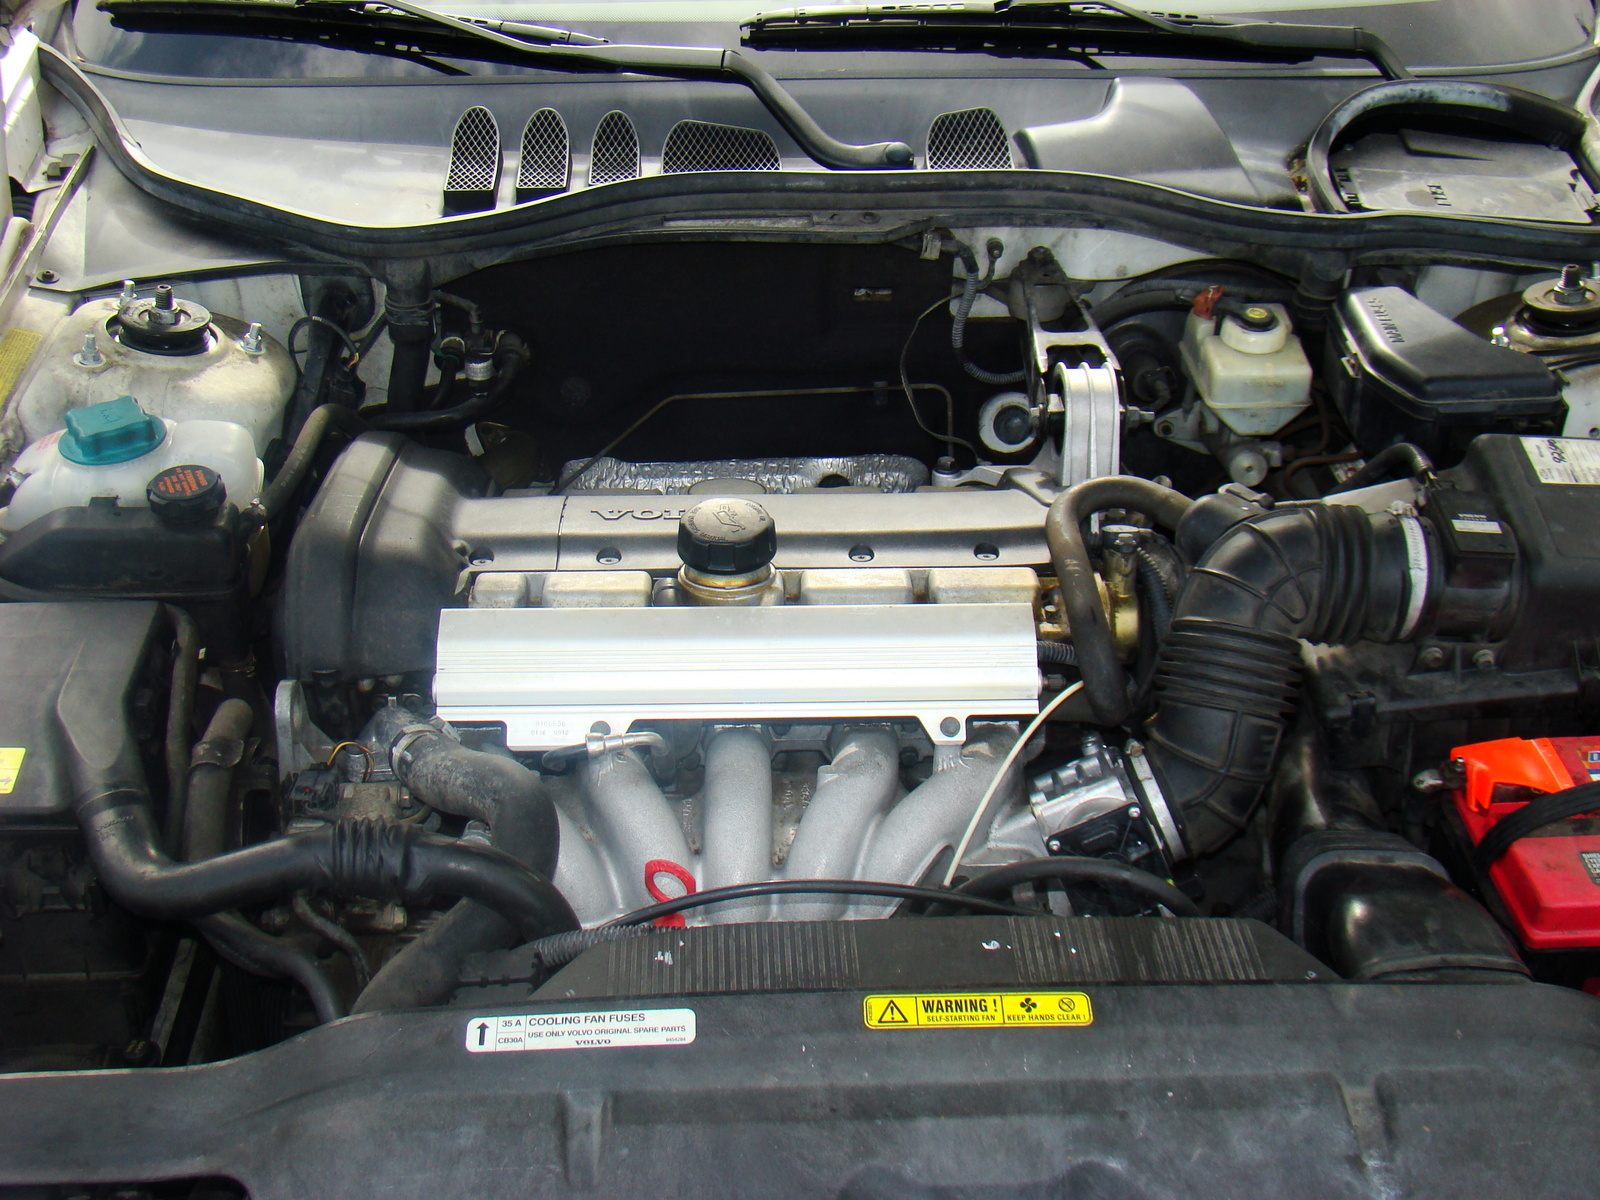 Volvo S70 engine #3